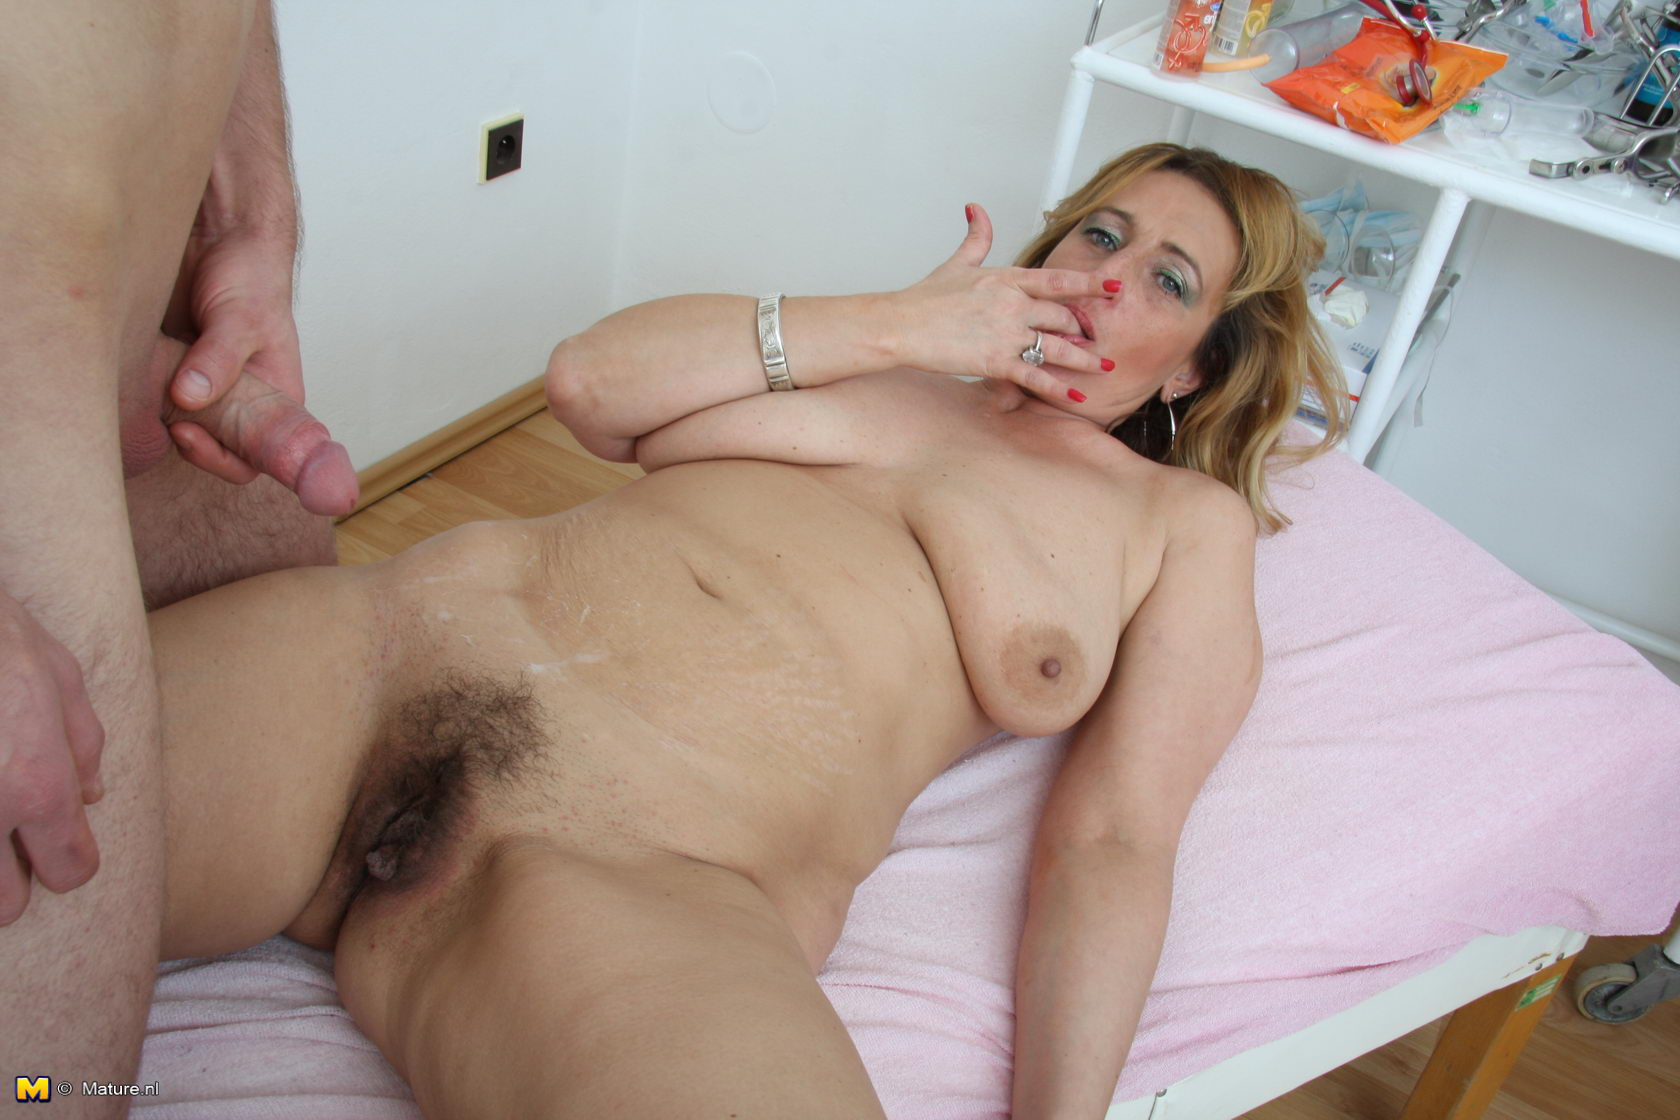 A slut like mom xxx part 3 of 4 2